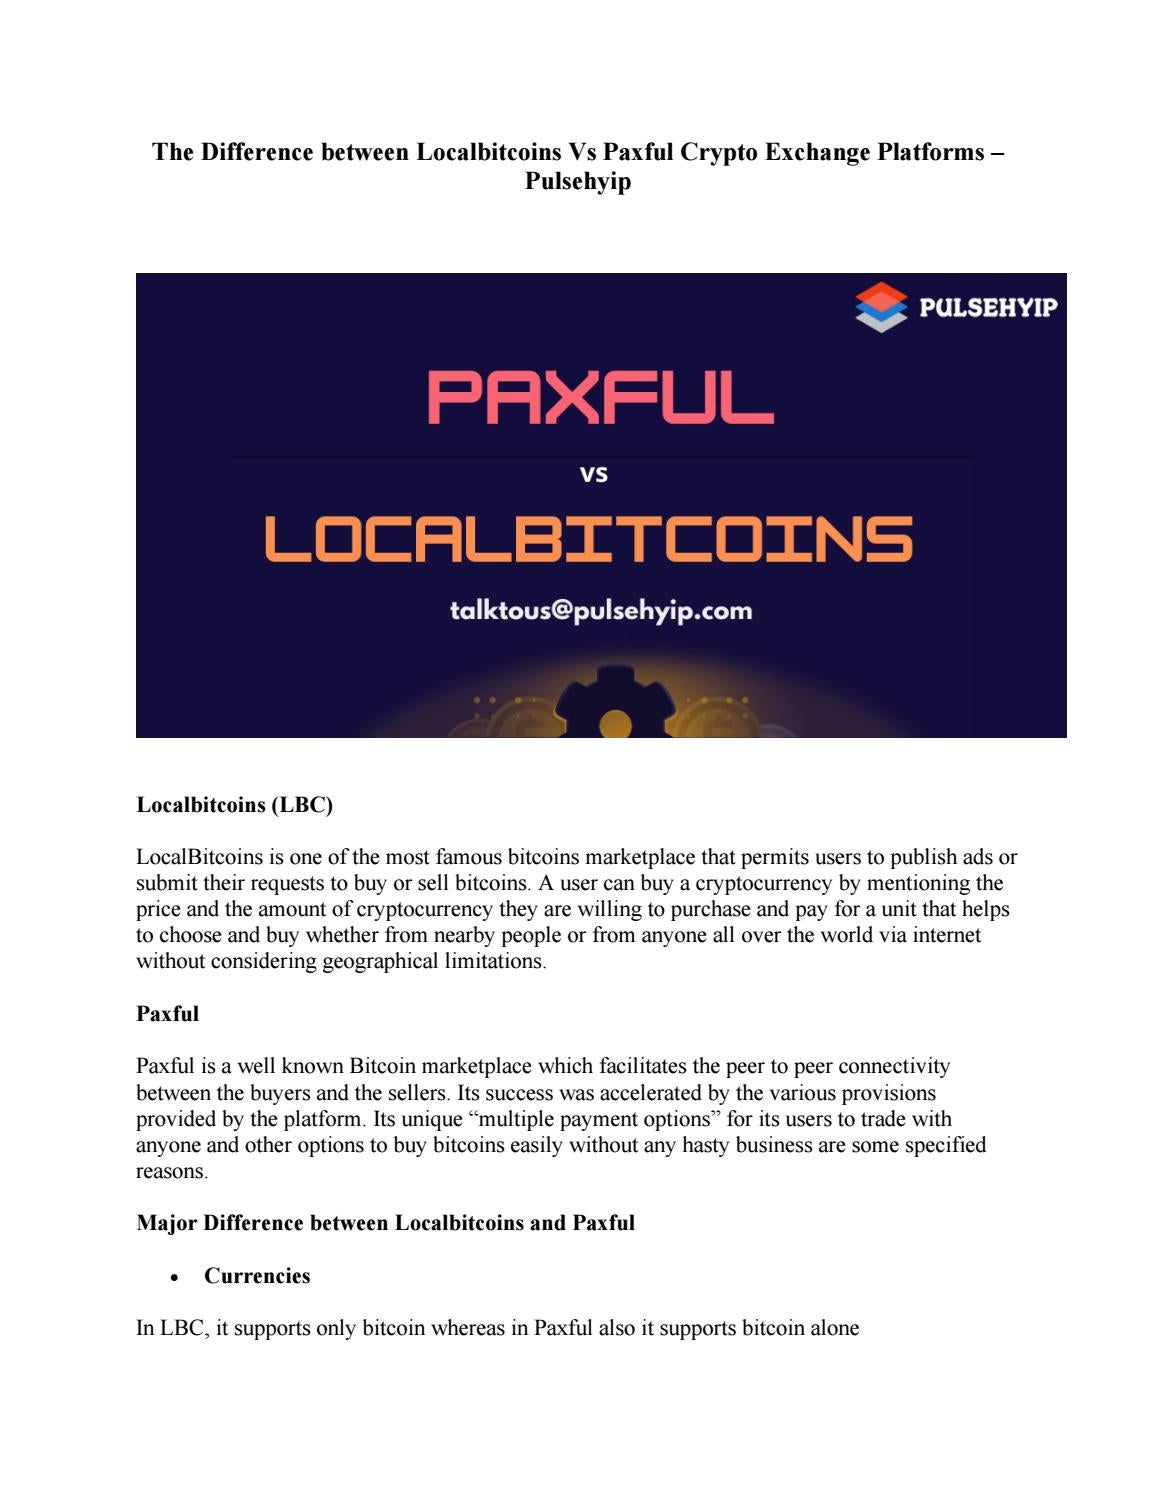 Paxful vs localbitcoins comcast rules for cricket betting